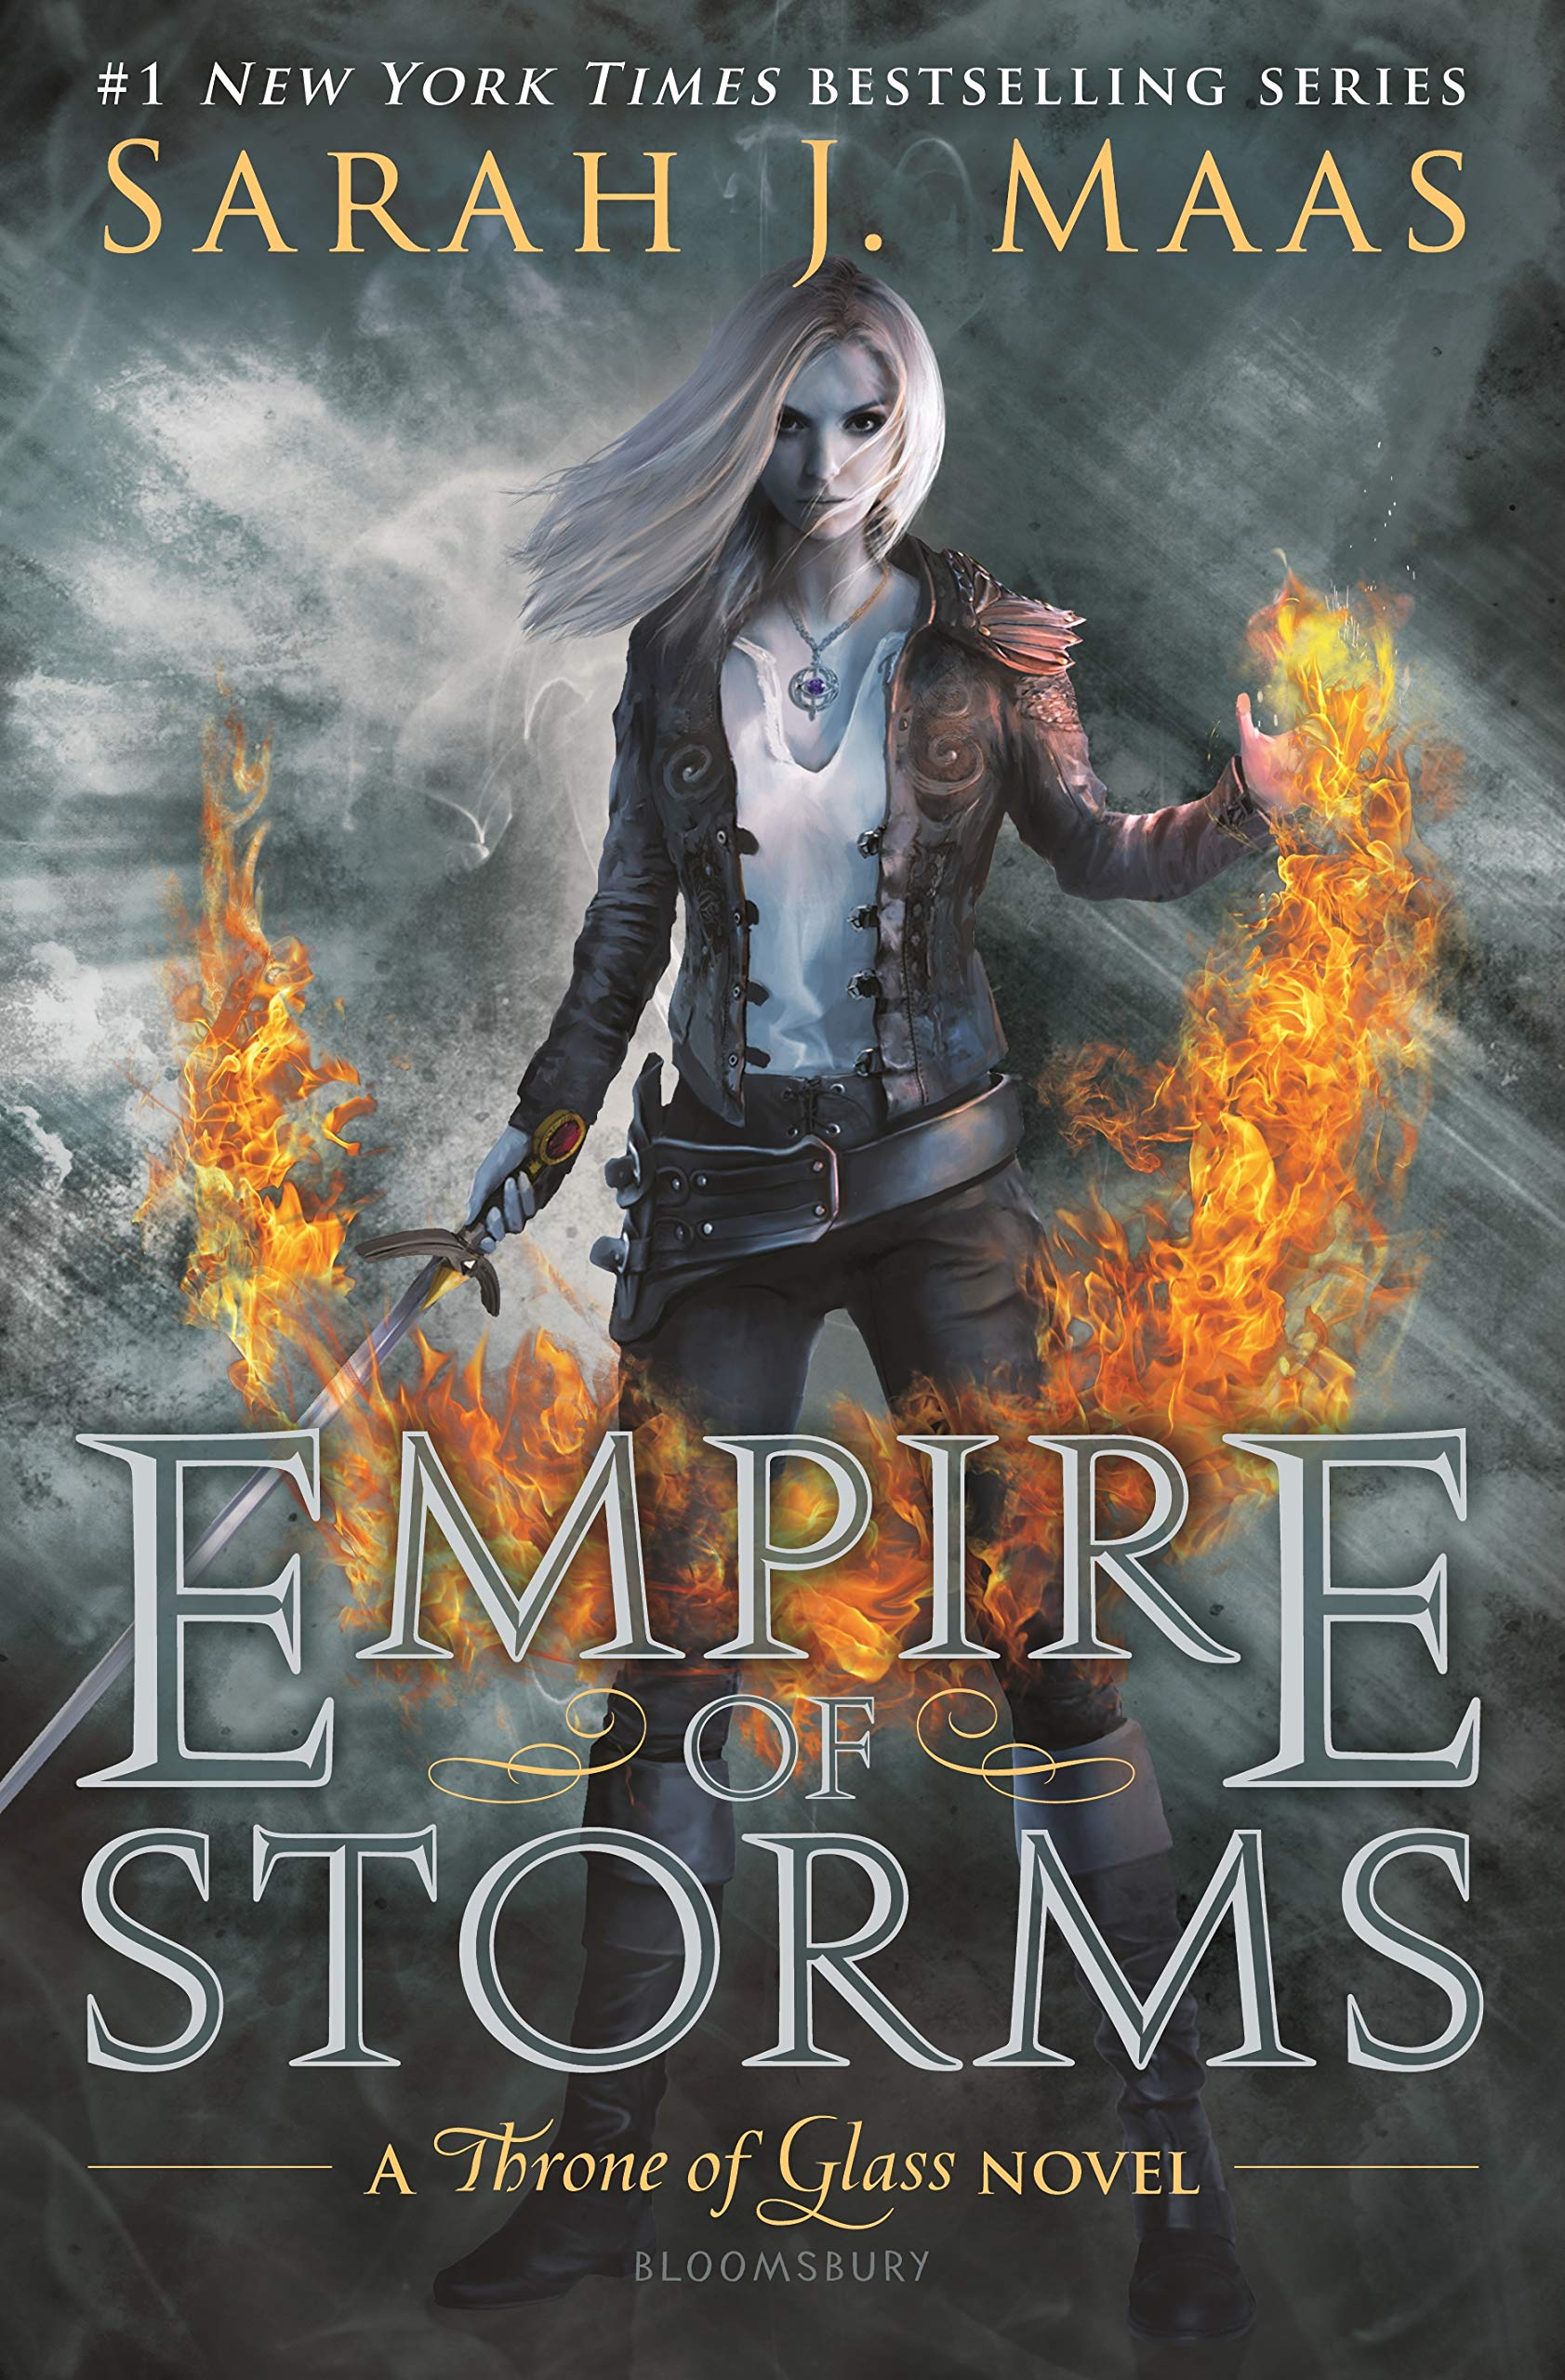 Amazon.com: Empire of Storms (Throne of Glass) (0642688056803 ...